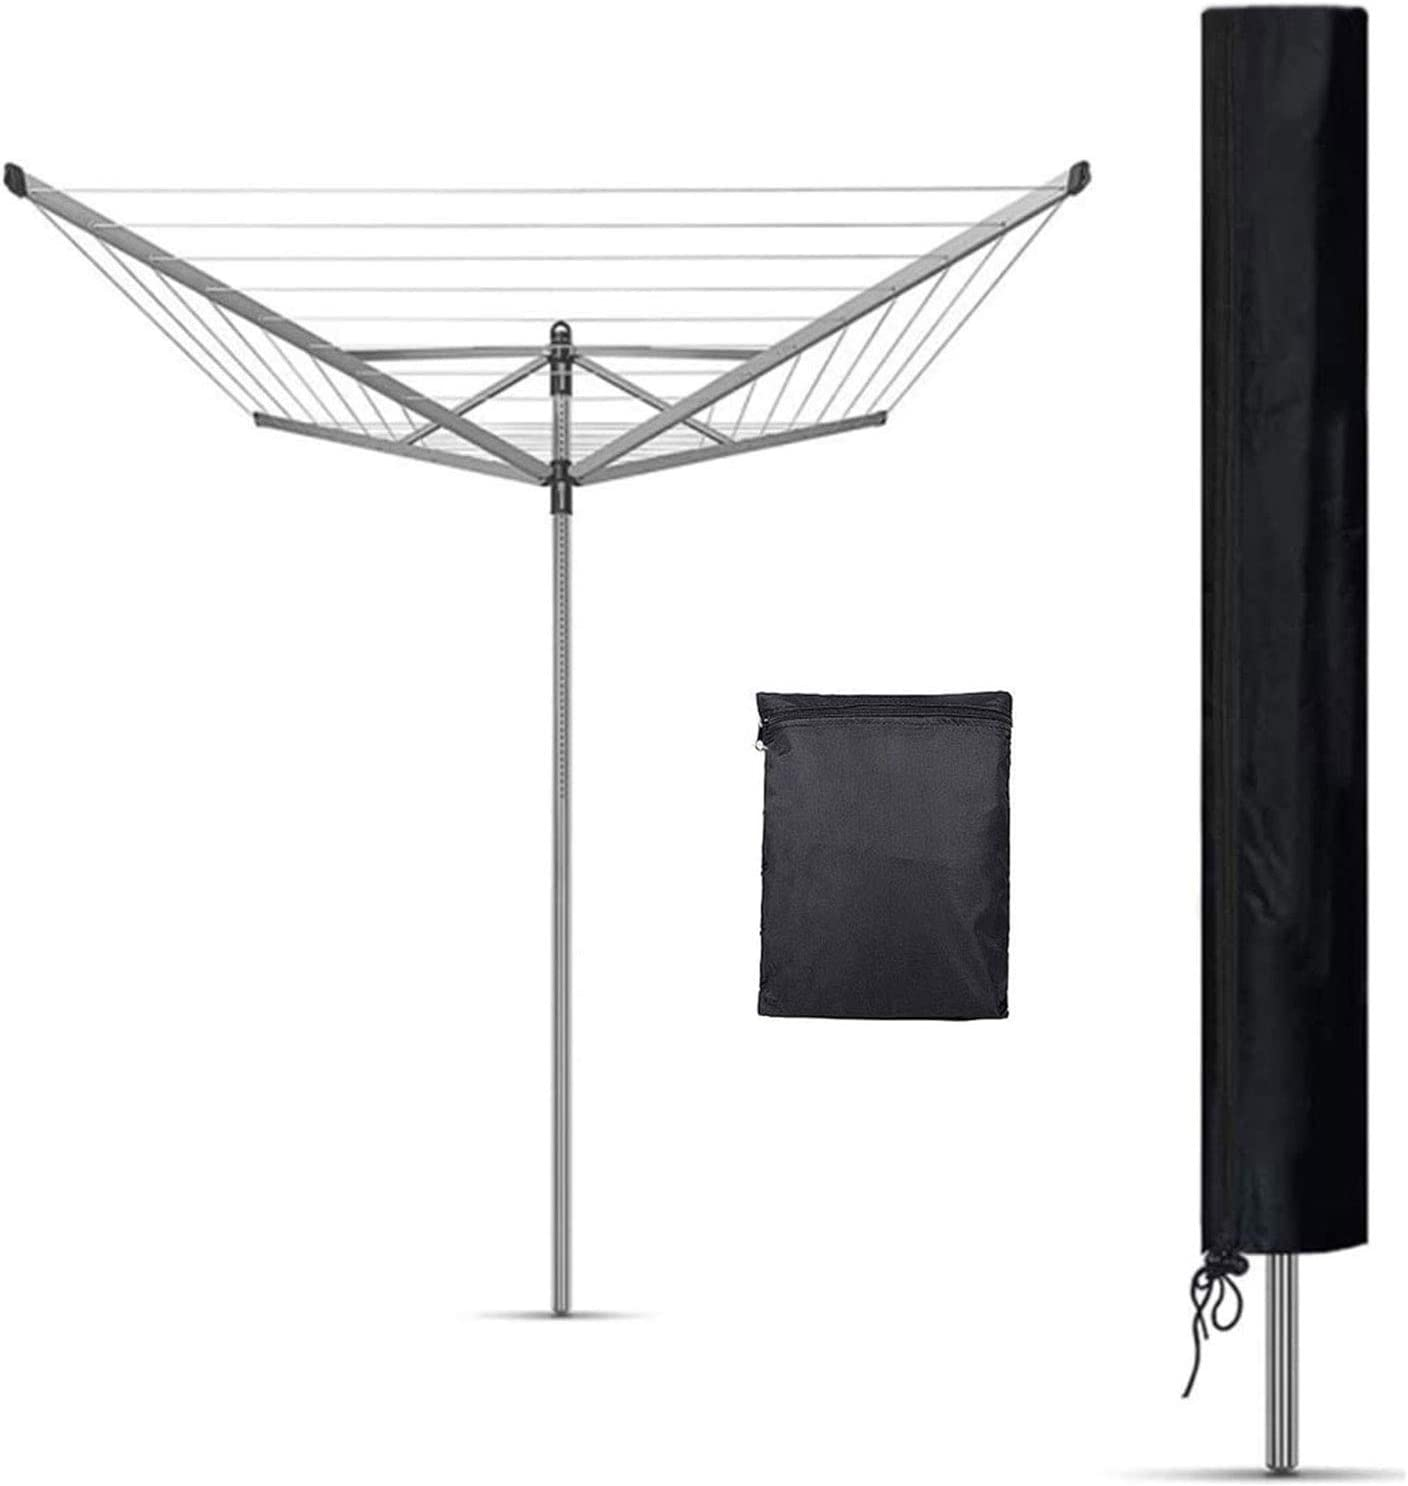 Rotary Washing Line Cover Waterproof Washing Line Cover Outdoor Umbrella Drying Rack Cover Shunfaji Protective Cover for Rotary Dryer Washing Lines Oxford Fabric Waterproof with Zip Silver